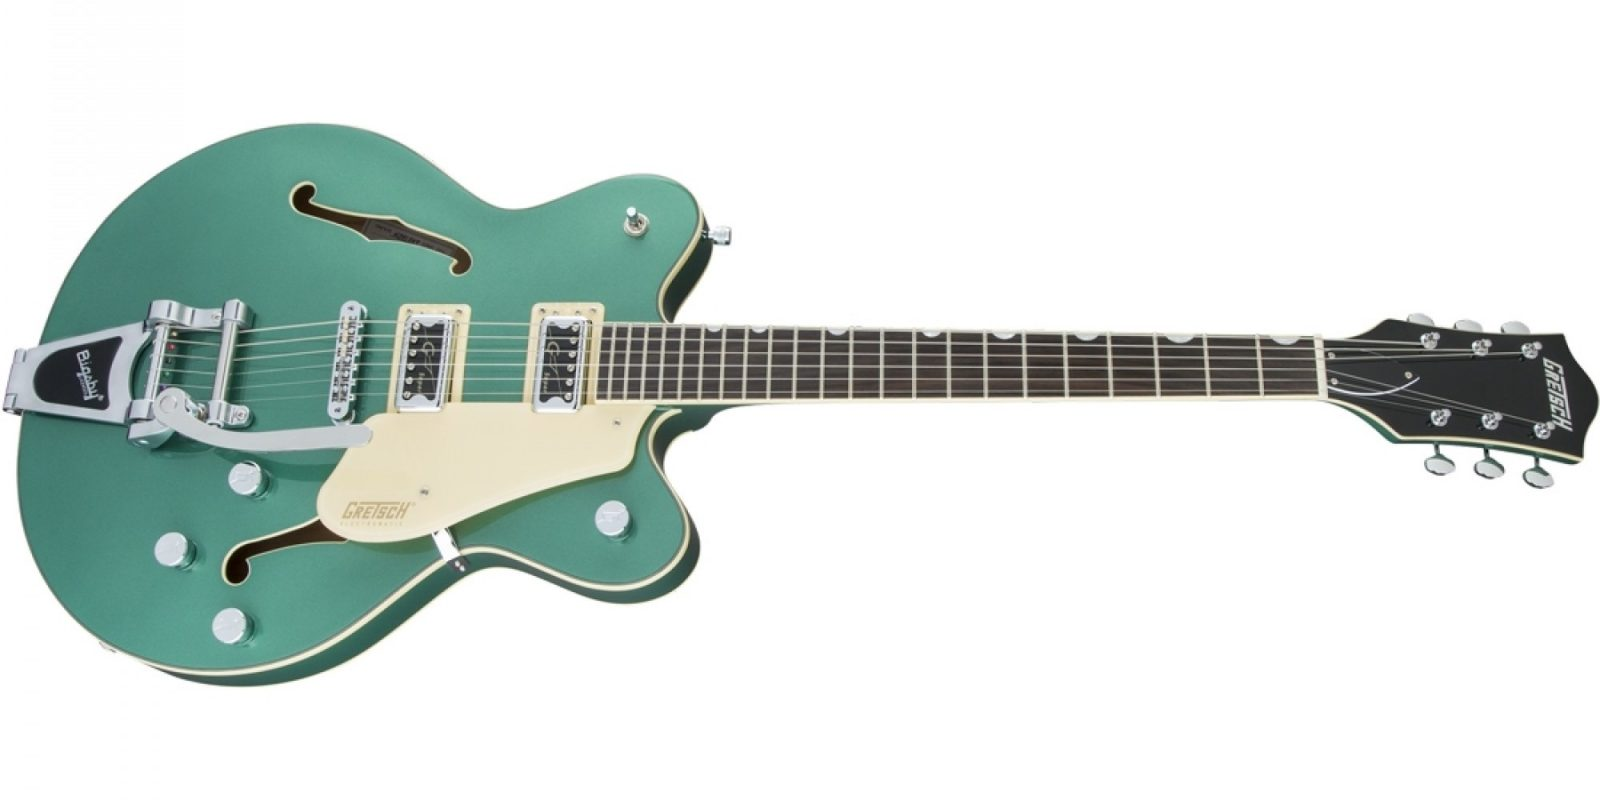 Guitar deals from $130: Gretsch, Martin, Yamaha, and more at up to $800 off